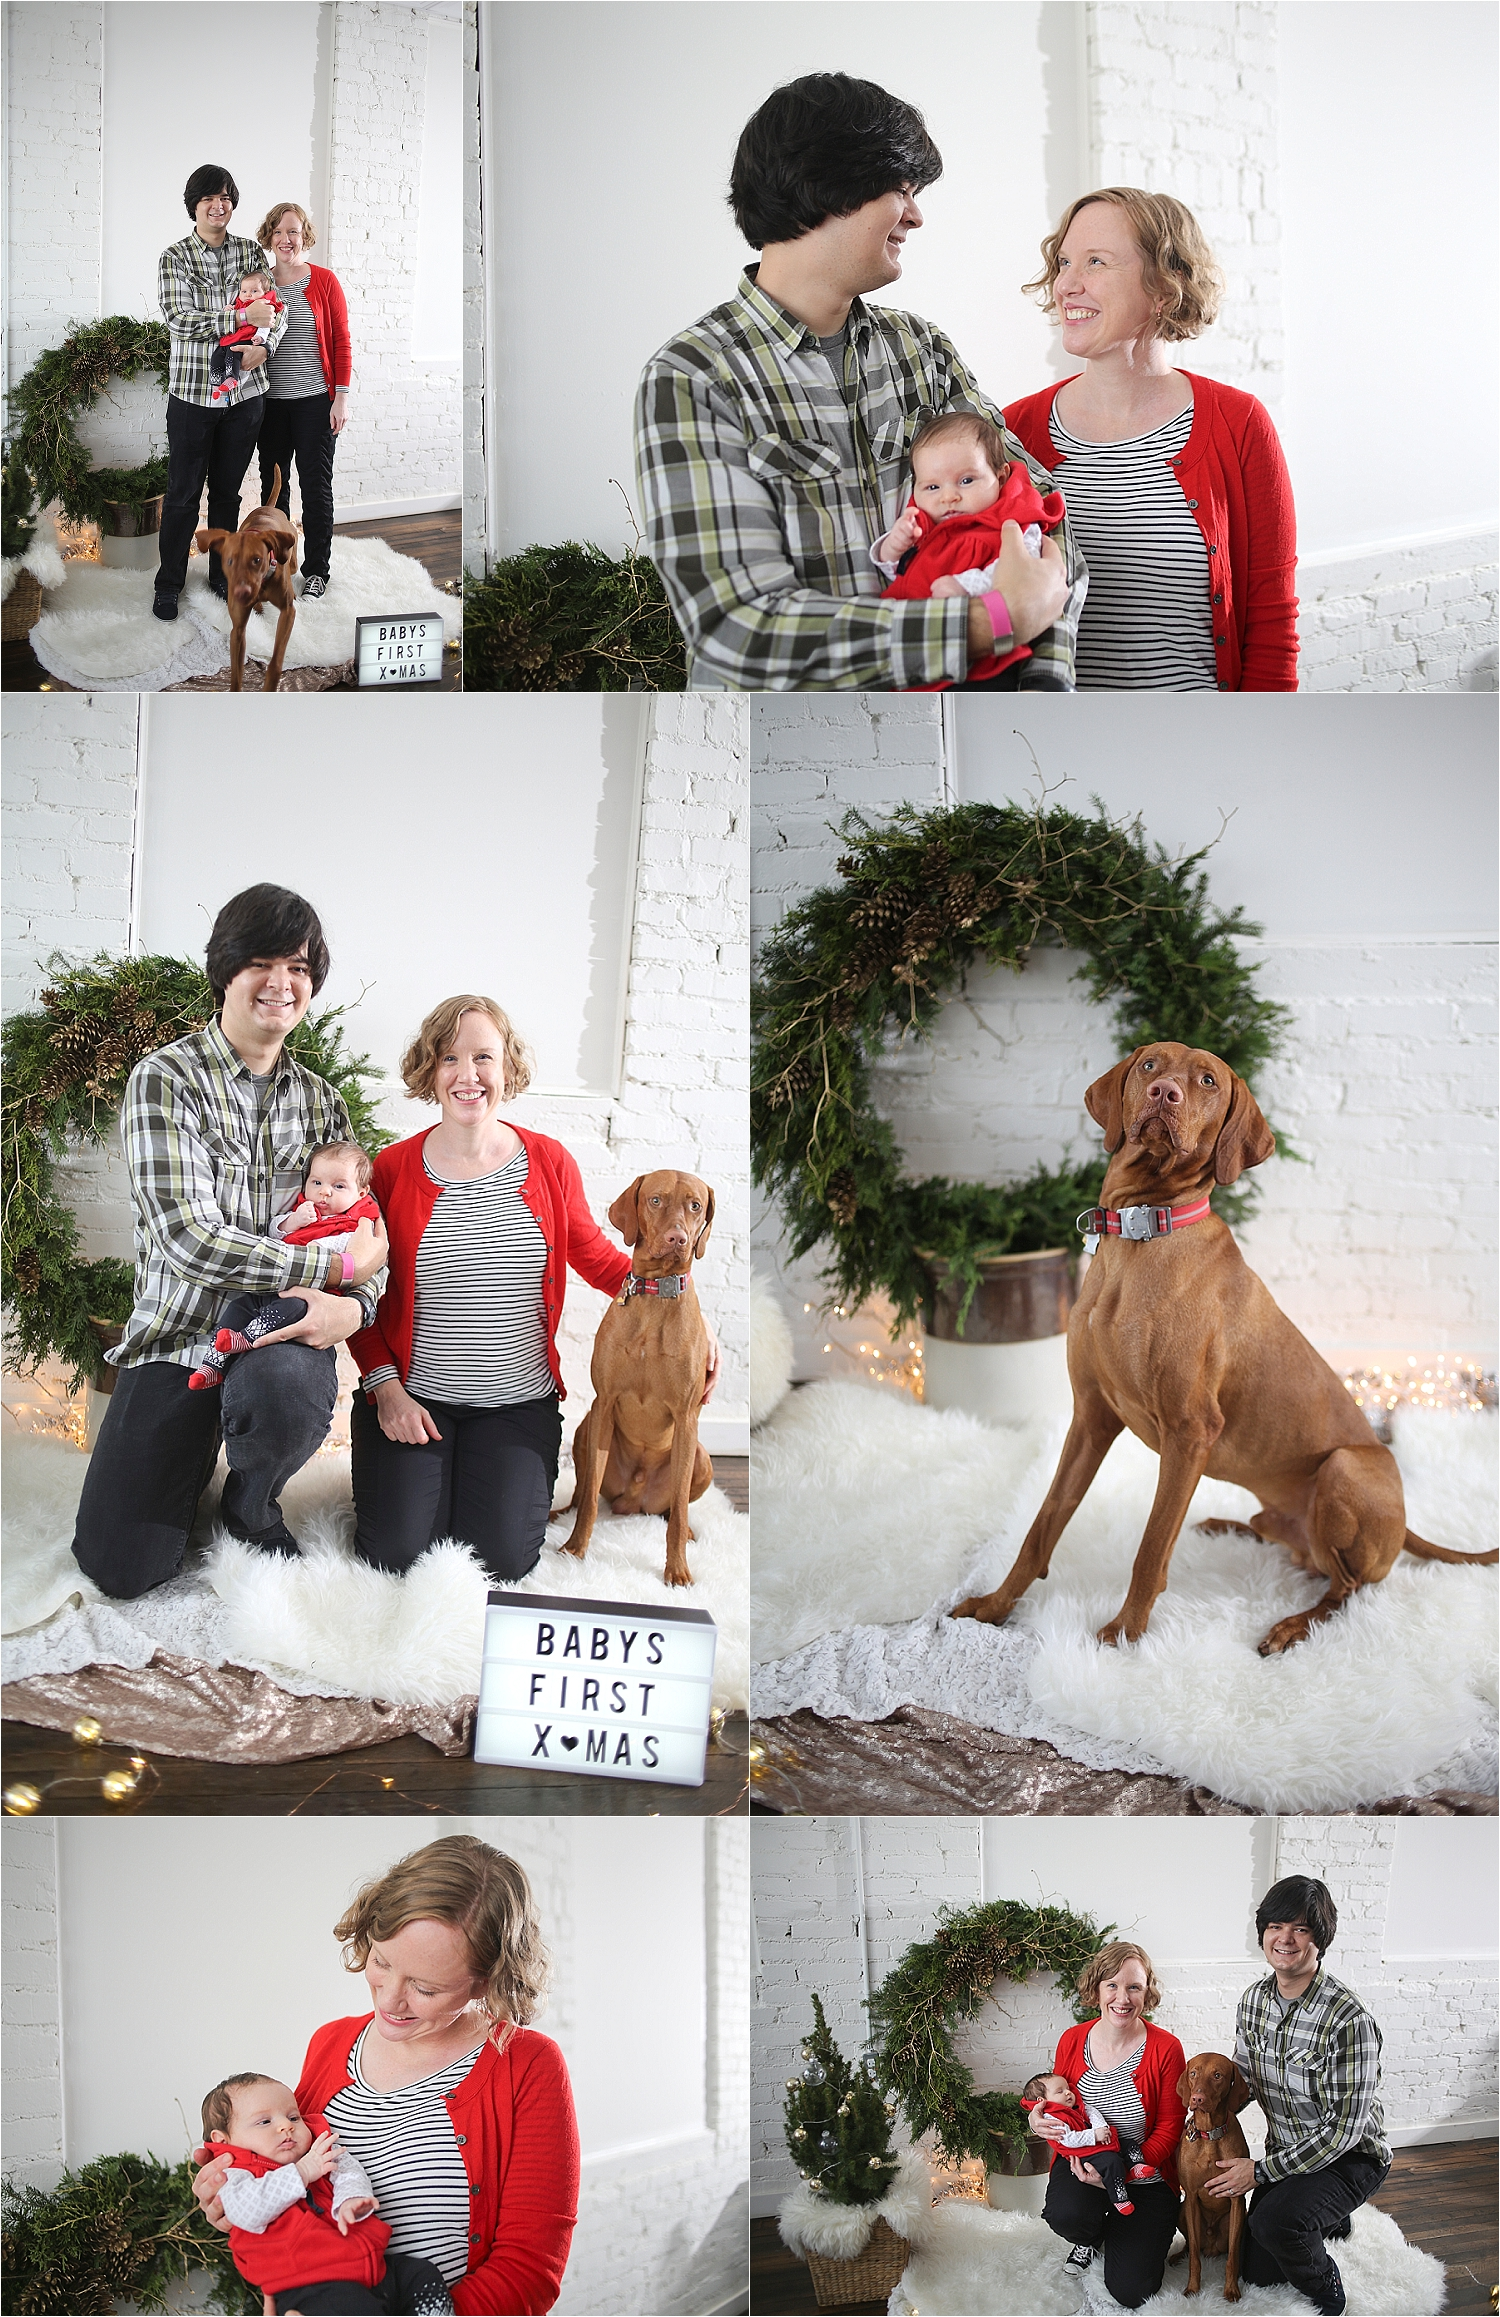 Blacksburg-Family-Photographer-Christmas-Photos_0009.jpg